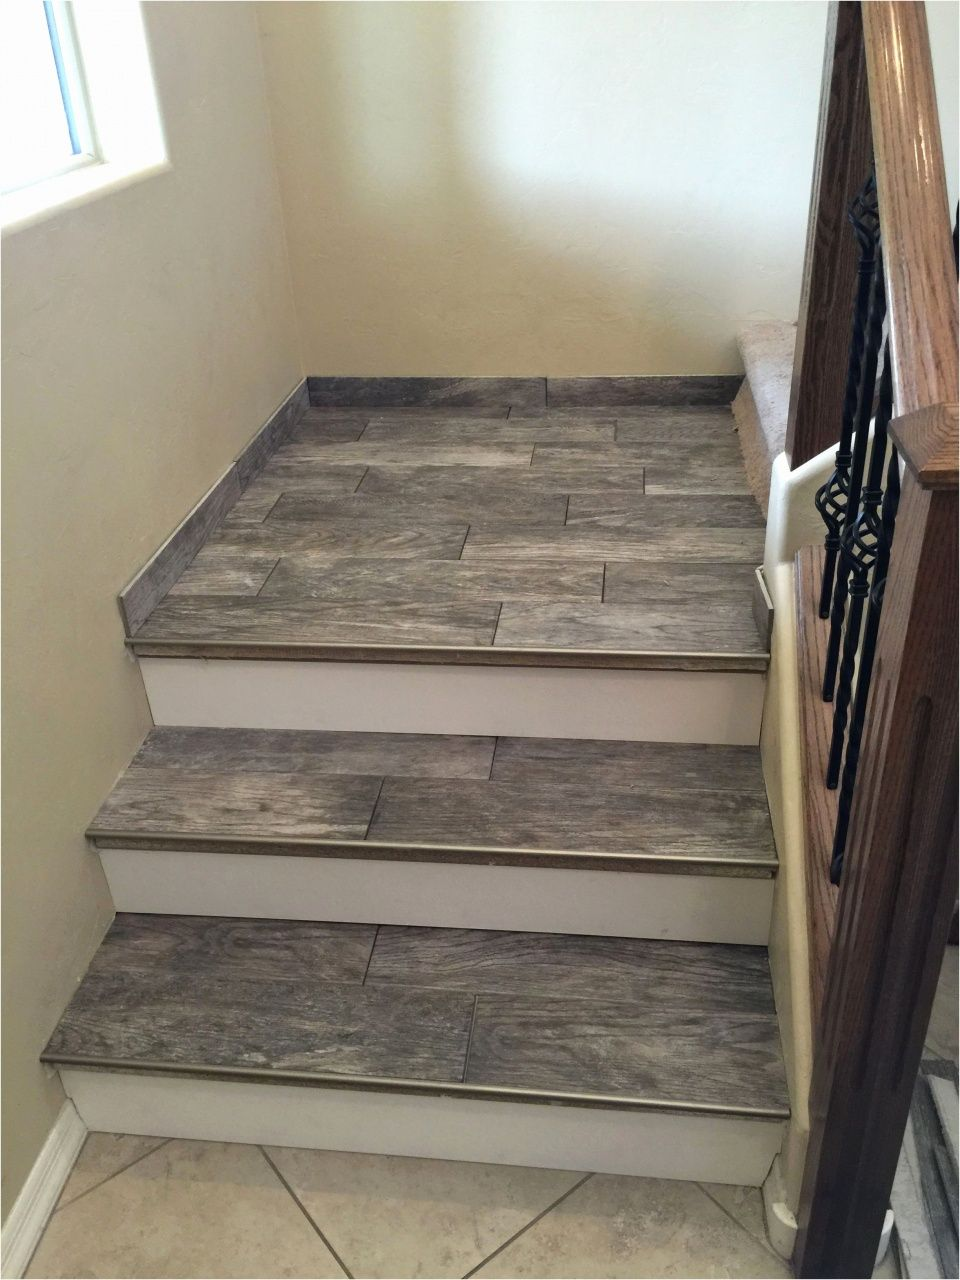 Laminate Flooring On Stairs With, Laminate Flooring On Stairs With Overhang